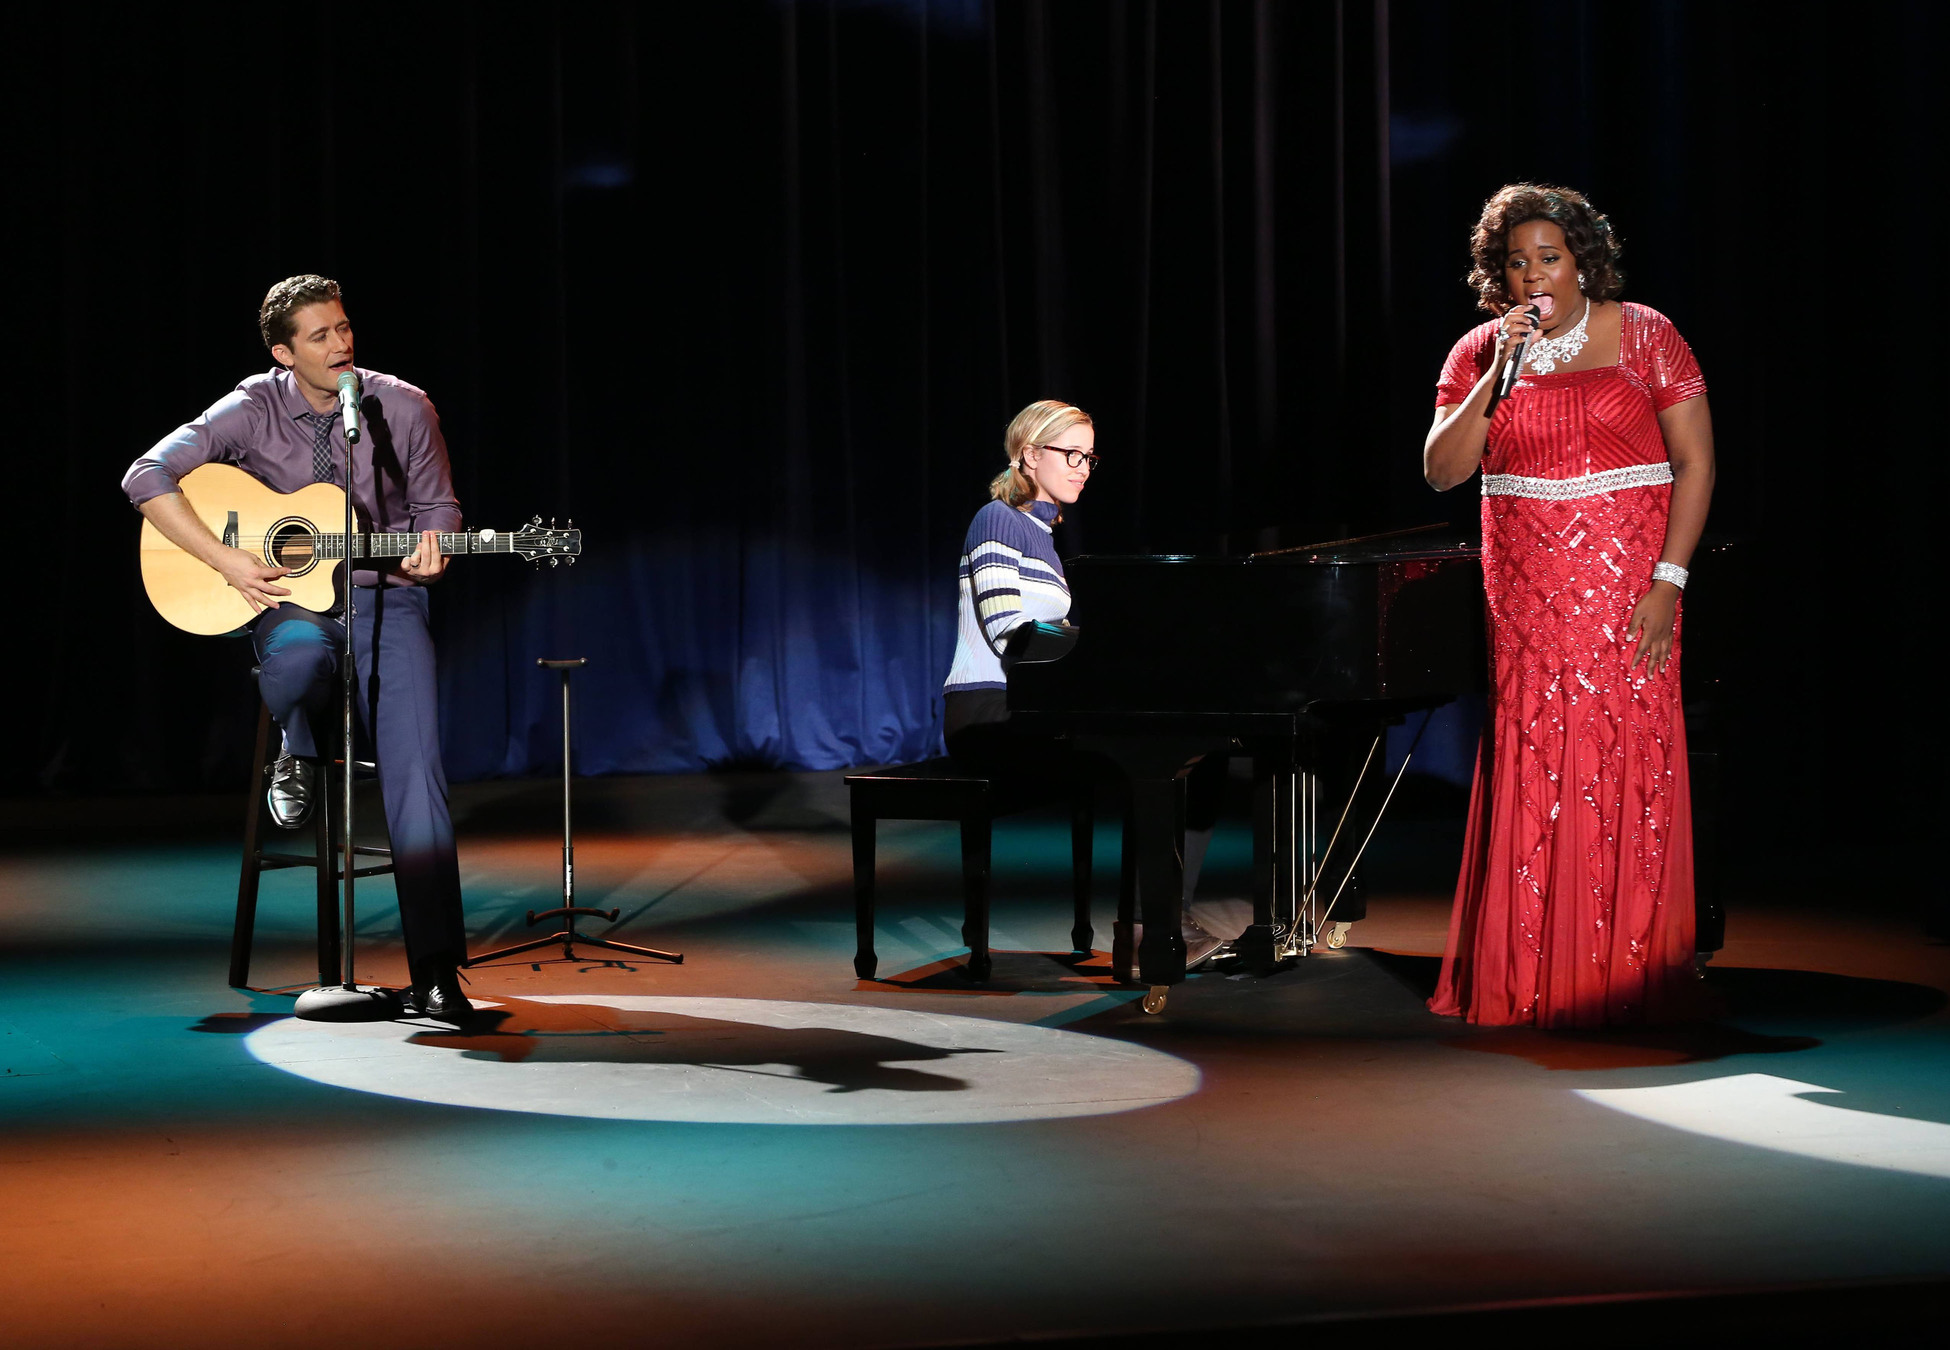 Matthew Morrison and Alex Newell in Glee (2009)